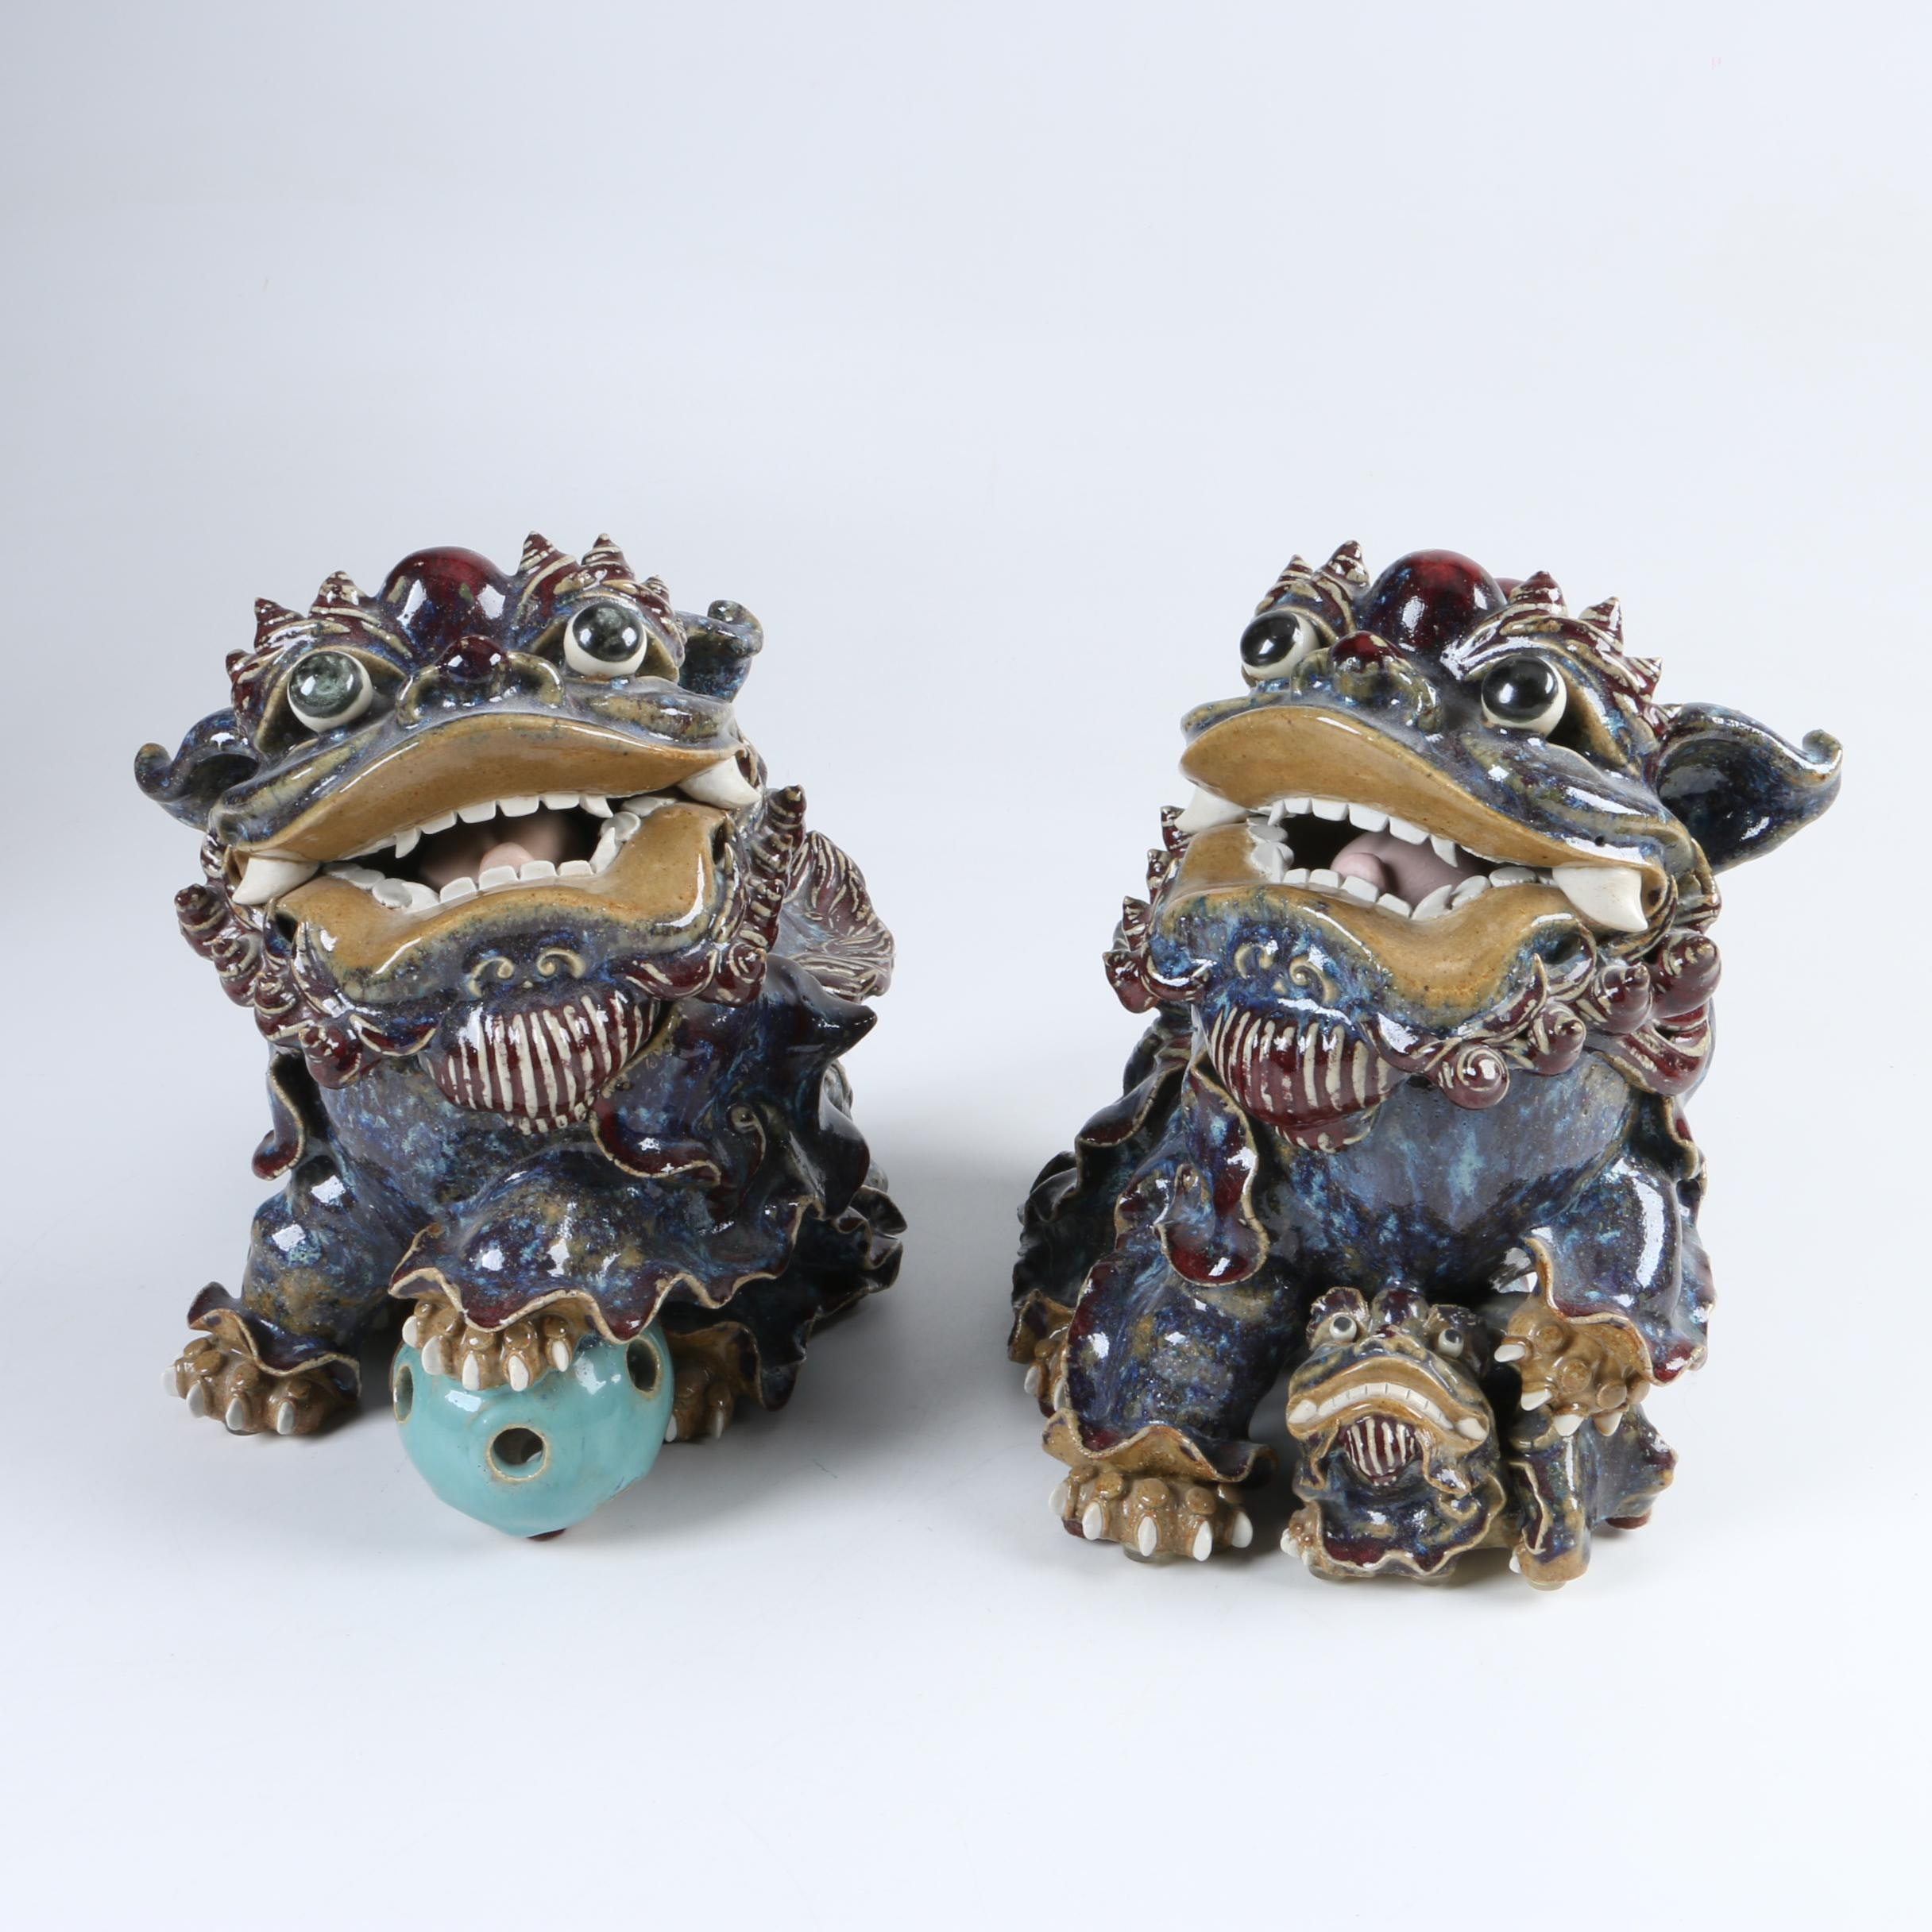 Chinese Ceramic Guardian Lion Sculptures